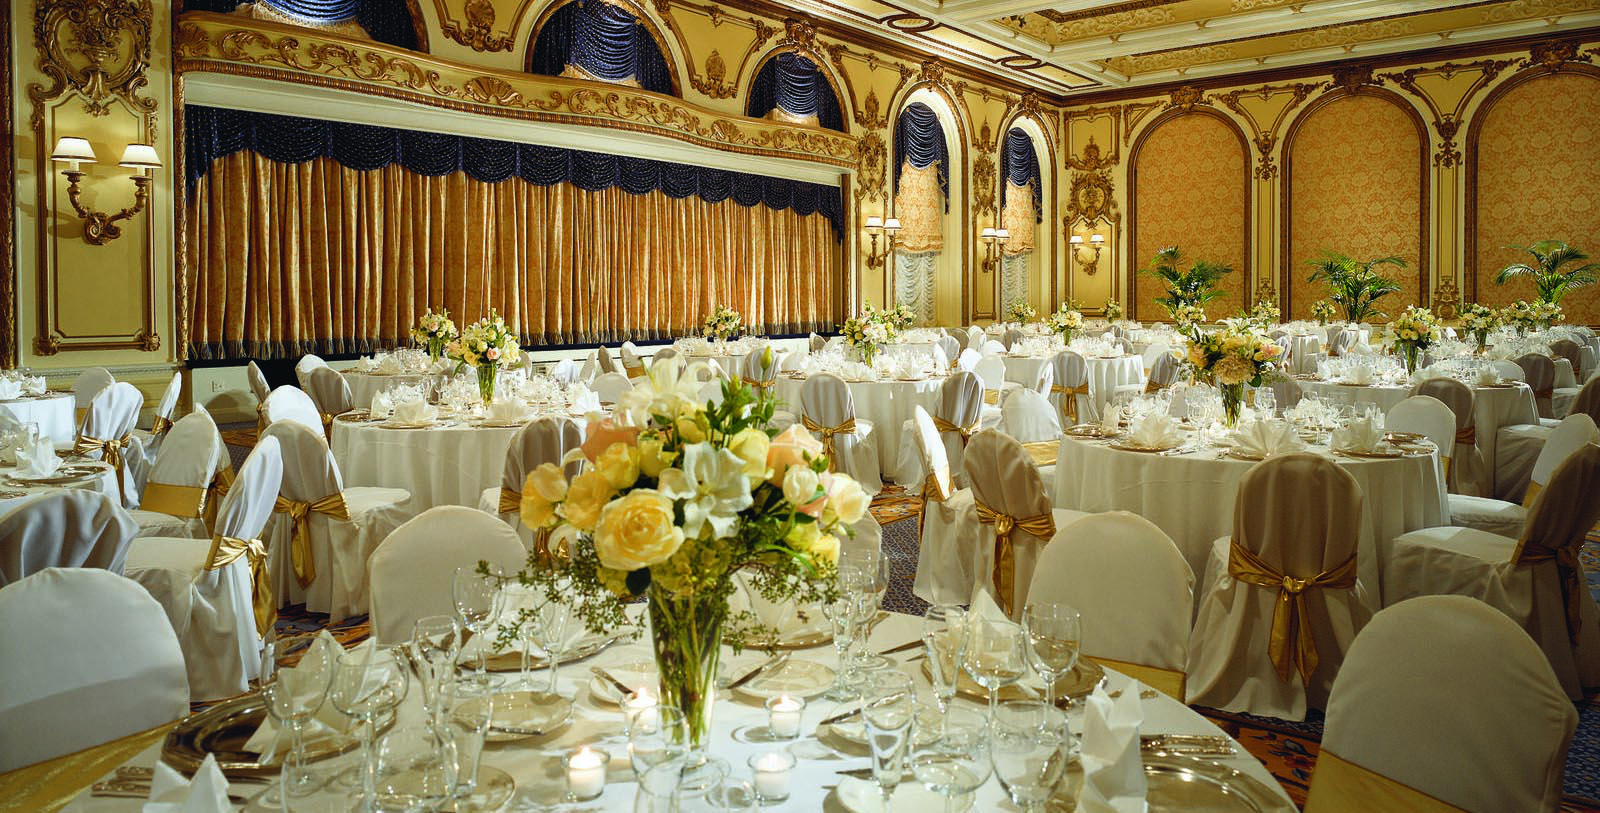 Image of Ballroom The Fairmont Hotel San Francisco, 1907, Member of Historic Hotels of America, in San Francisco, California, Special Occasions